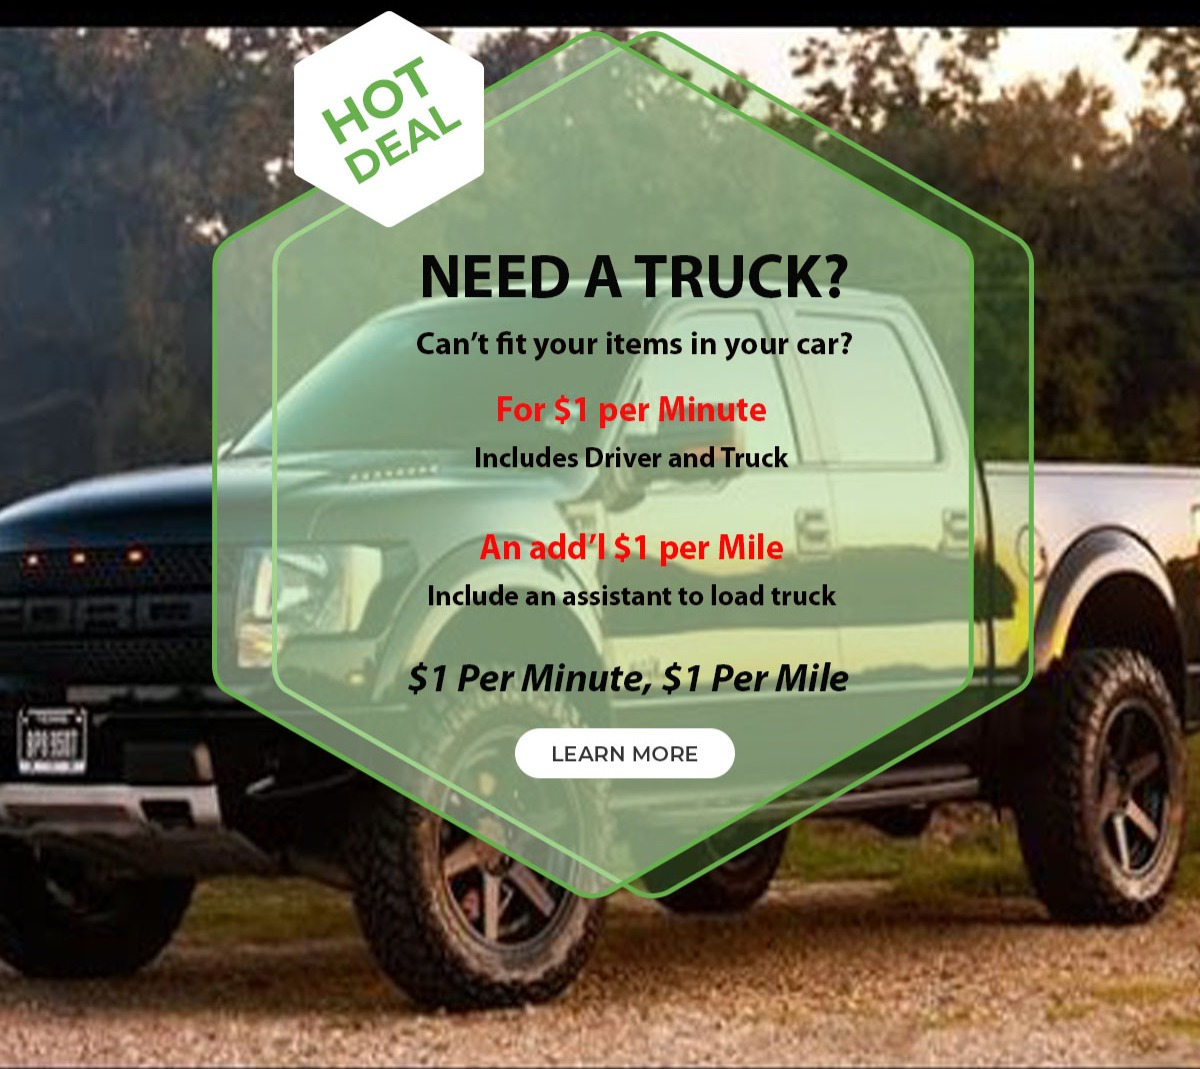 Need a Truck?